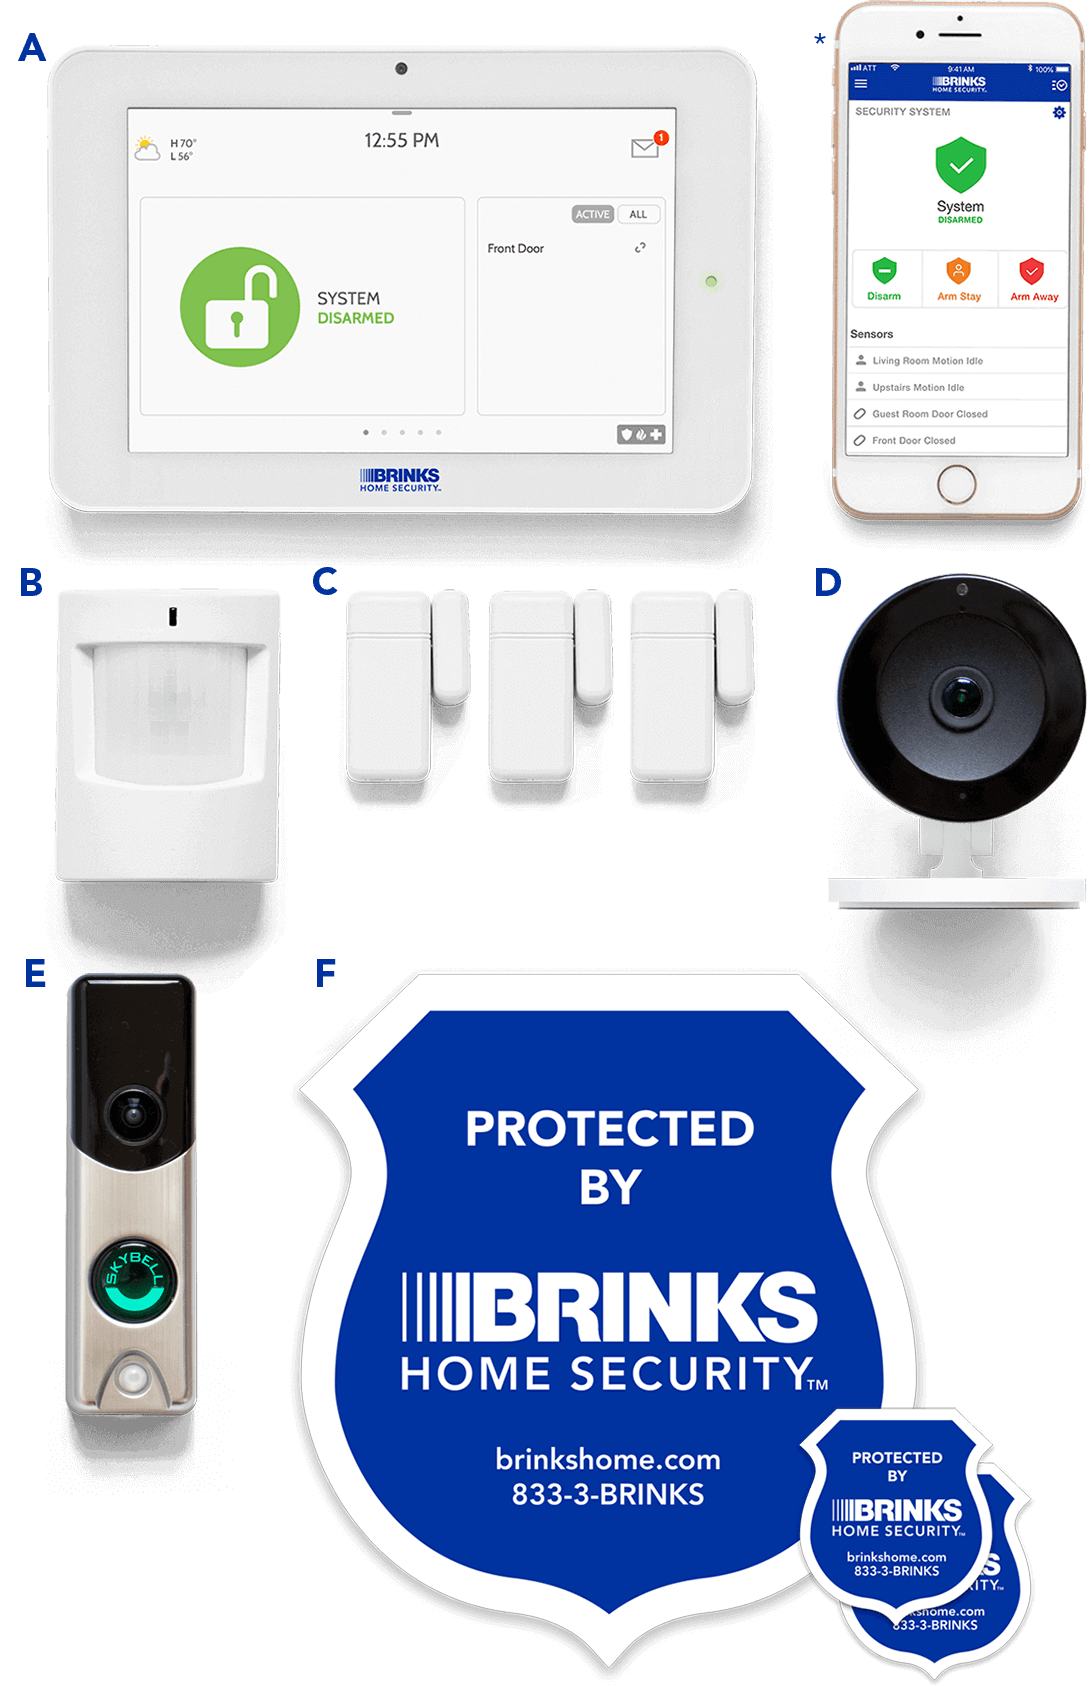 Home Security Systems Brands Best Home Security System Home Security Best Home Security